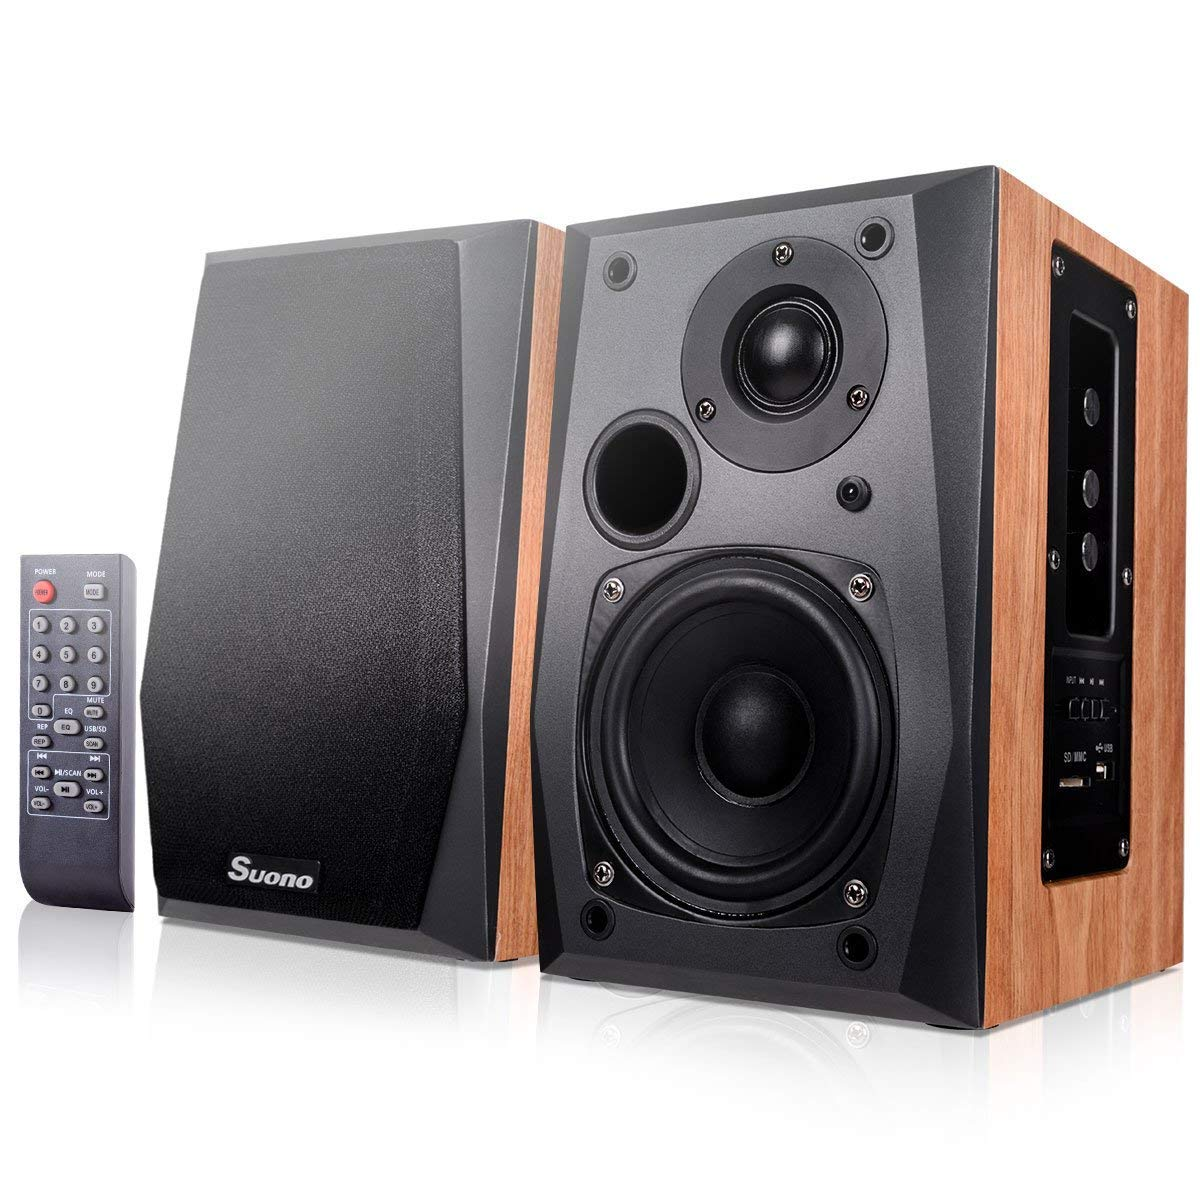 Costzon Powered Bluetooth Bookshelf Speakers, Wall Mount Active Studio Stereo Monitor Speaker with Tweeter, Woofer, USB, SD/MMC Card Slot, Remote Control (Active & Passive Speakers Set)